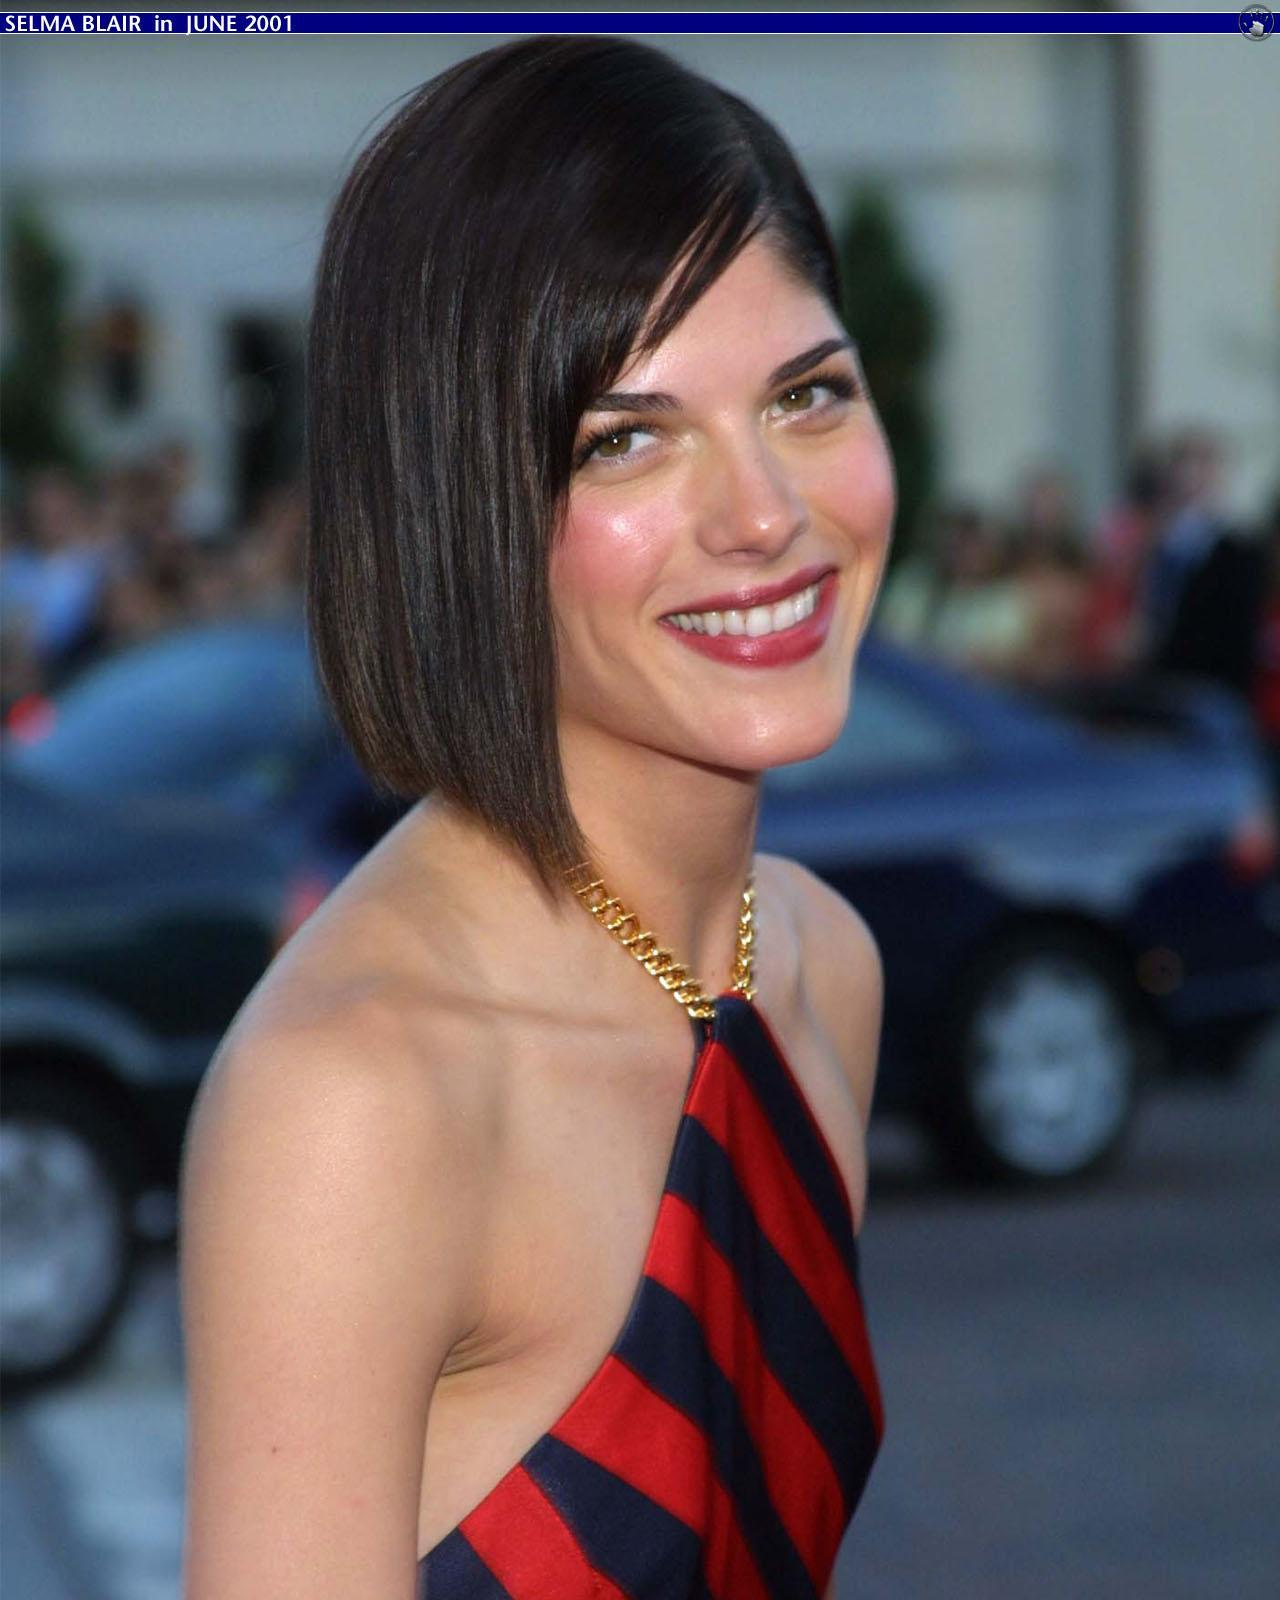 Actress Selma Blair reveals multiple sclerosis diagnosis